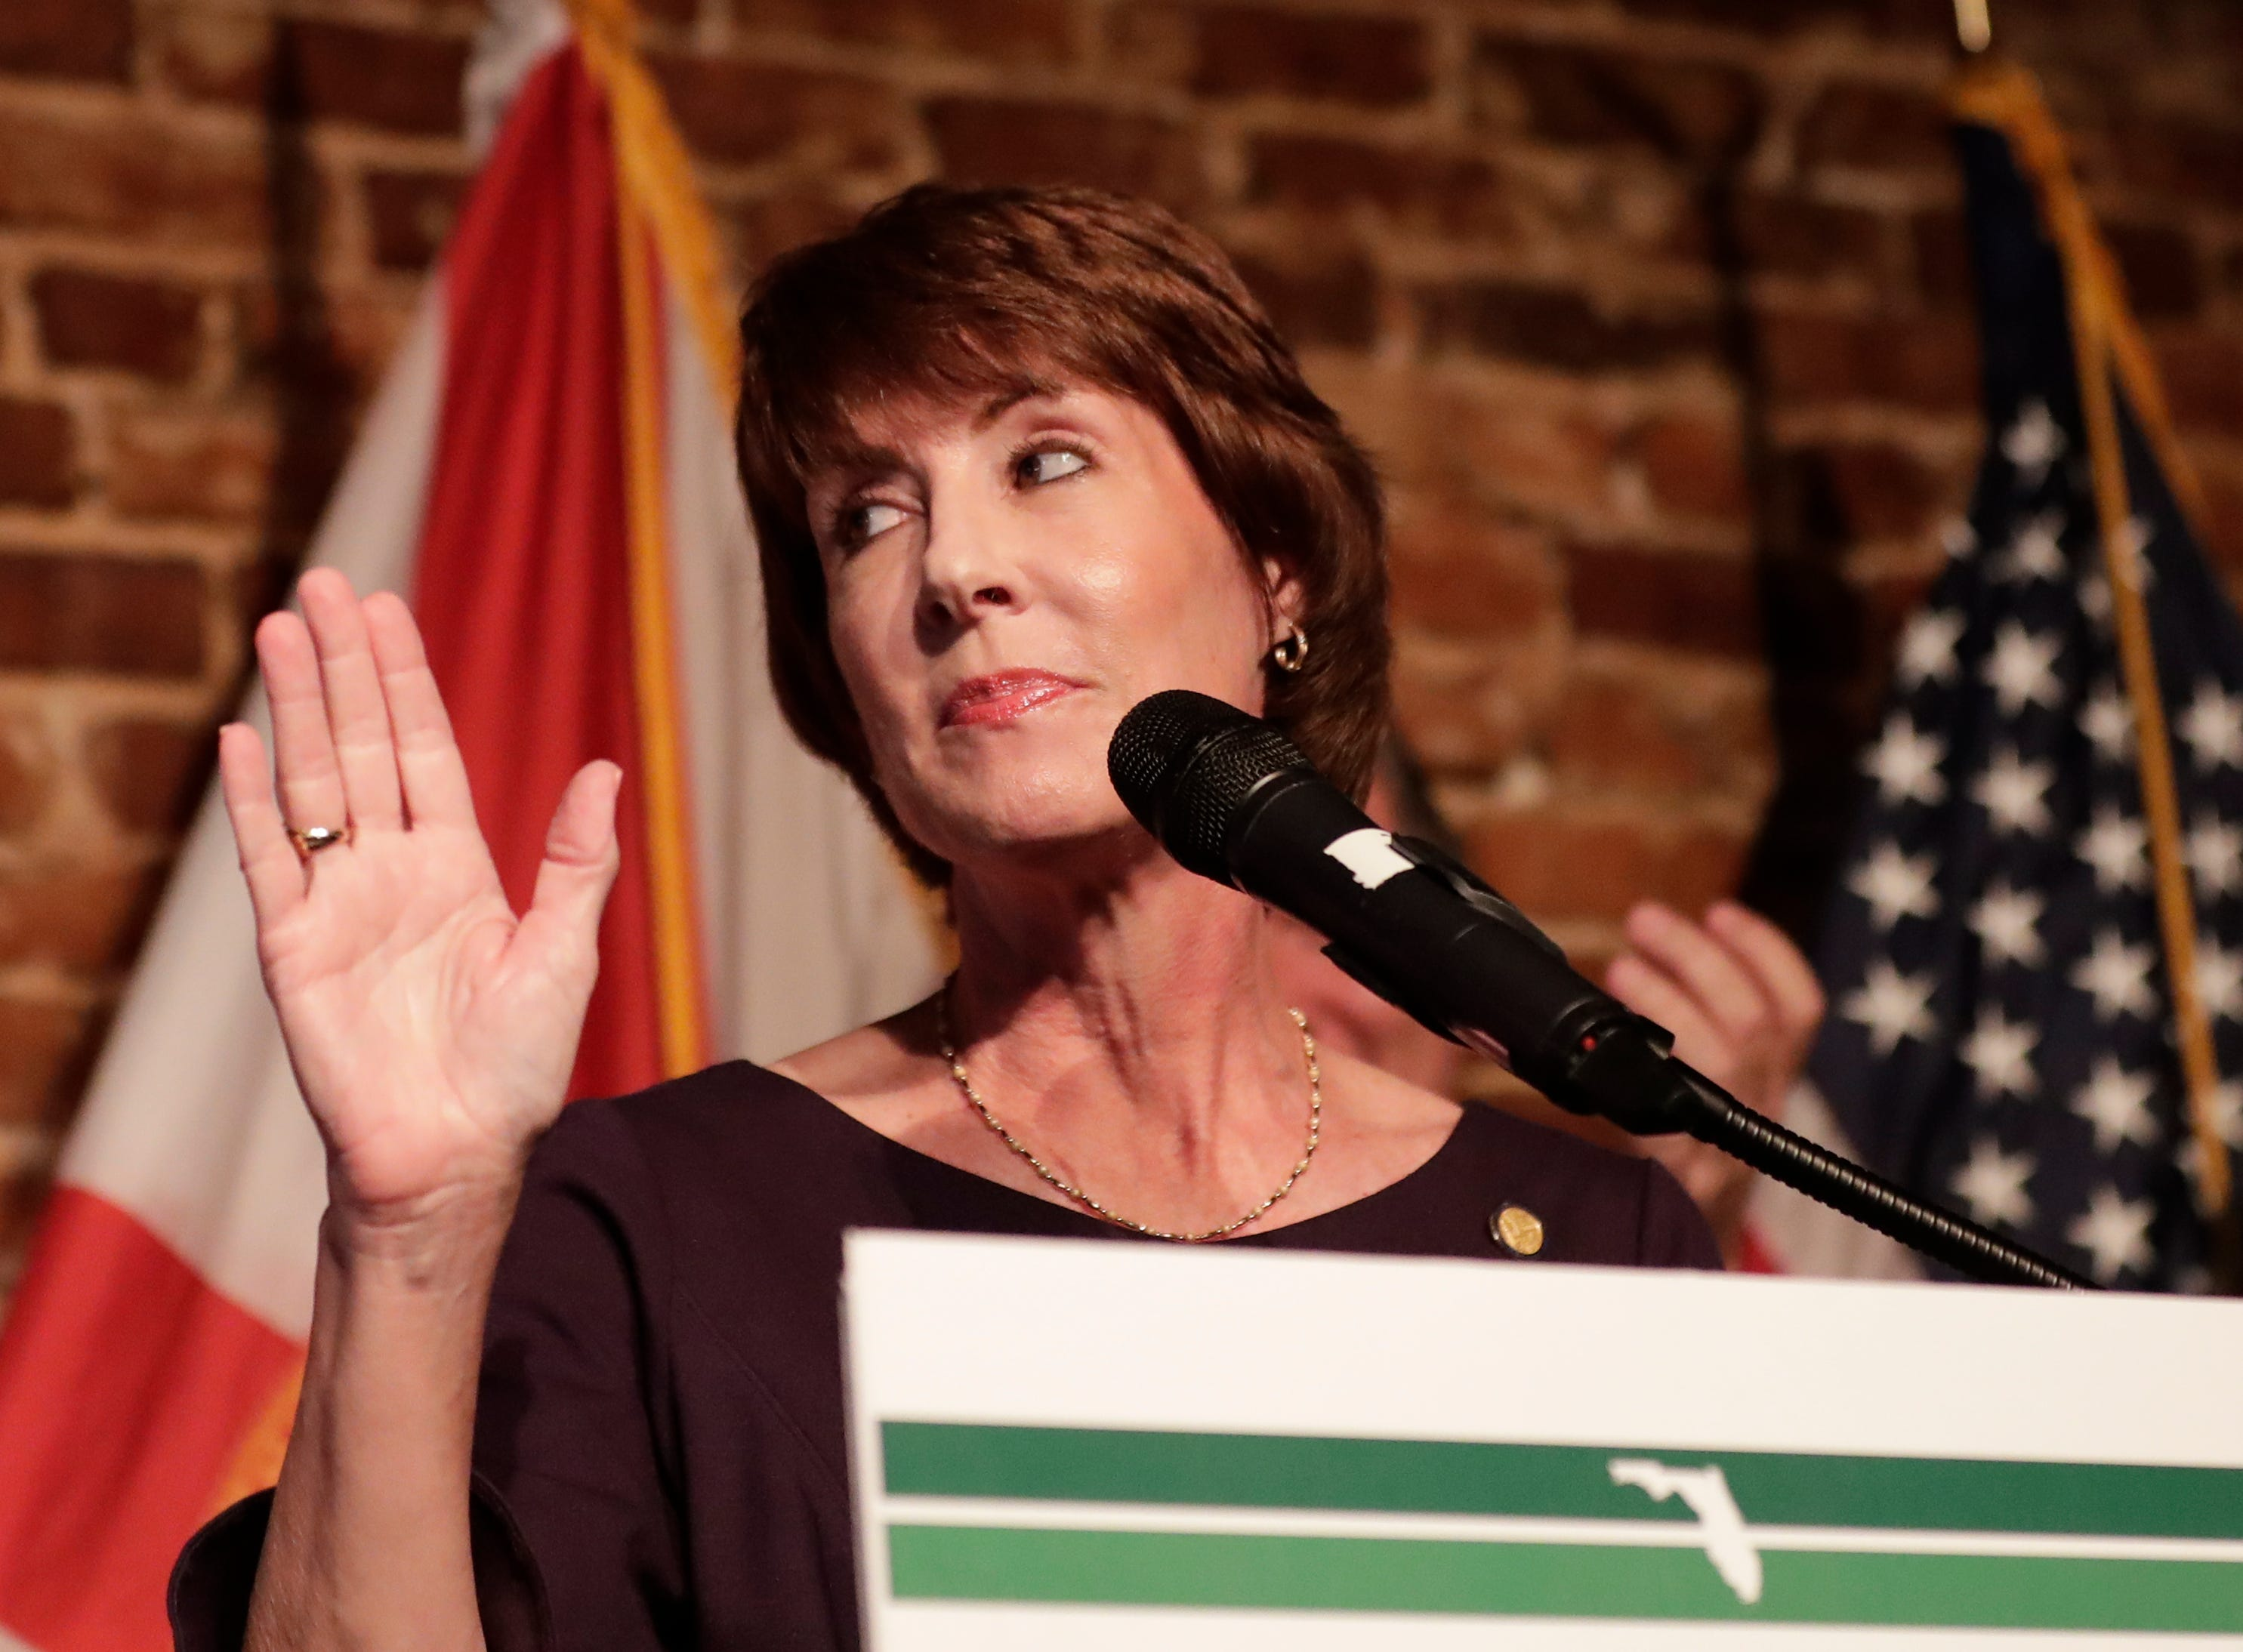 Democratic gubernatorial candidate Gwen Graham gives her concession speech at a primary election night party Tuesday, Aug. 28, 2018, in Orlando, Fla. (AP Photo/John Raoux)